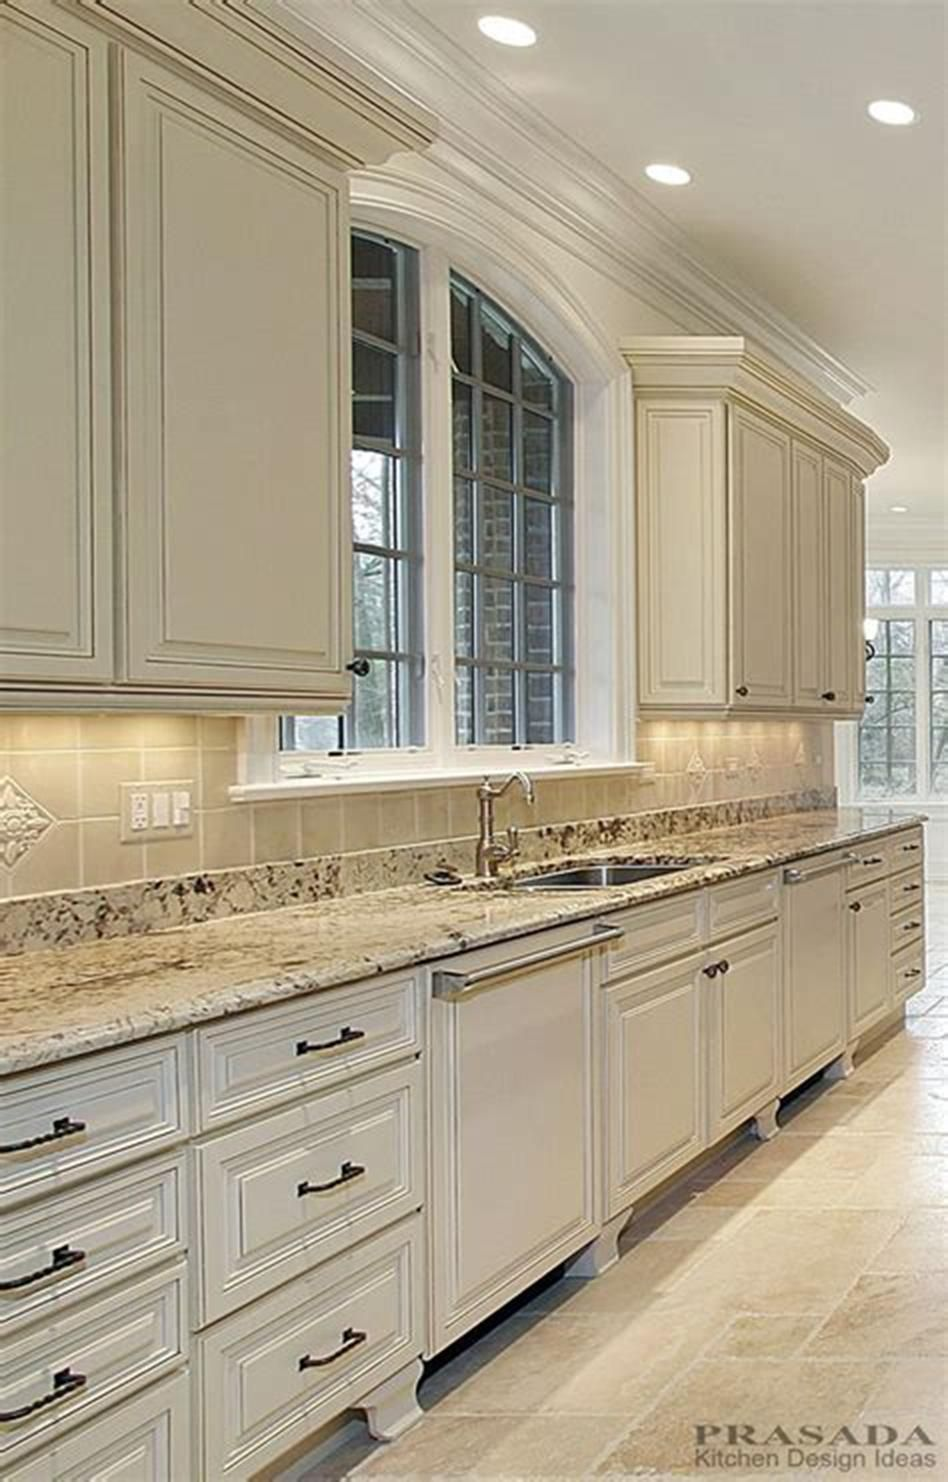 White Kitchen Design Antique White Kitchen Kitchen Interior Interior Design Kitchen K In 2020 White Kitchen Design Interior Design Kitchen Kitchen Interior